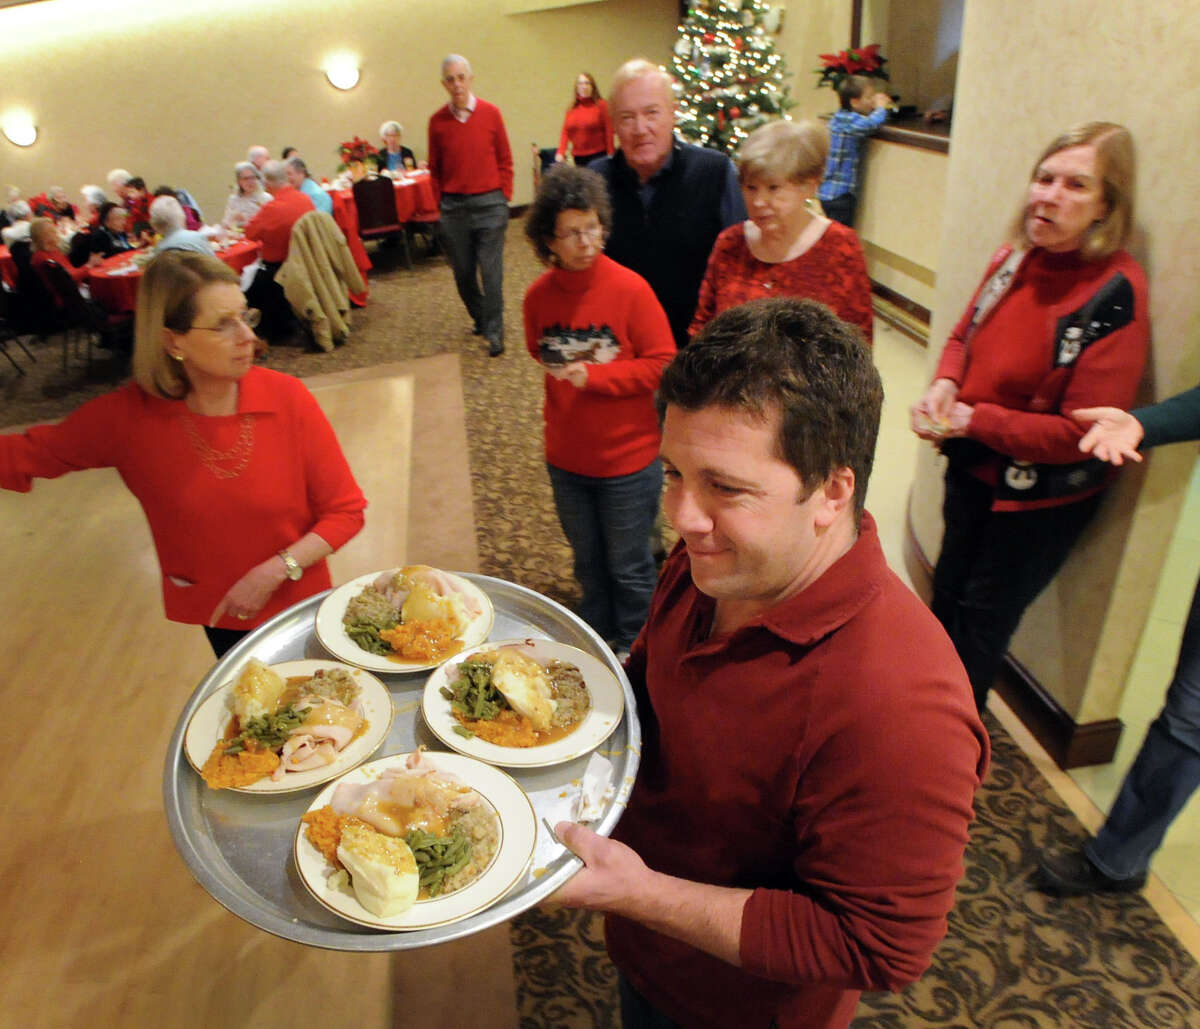 Greenwich Knights of Columbus volunteer Jason Marino carries a tray of turkey dinners during the annual Christmas meal at the club's headquarters on West Putnam Avenue in Greenwich, Christmas Day, Wednesday afternoon, Dec. 25, 2013.